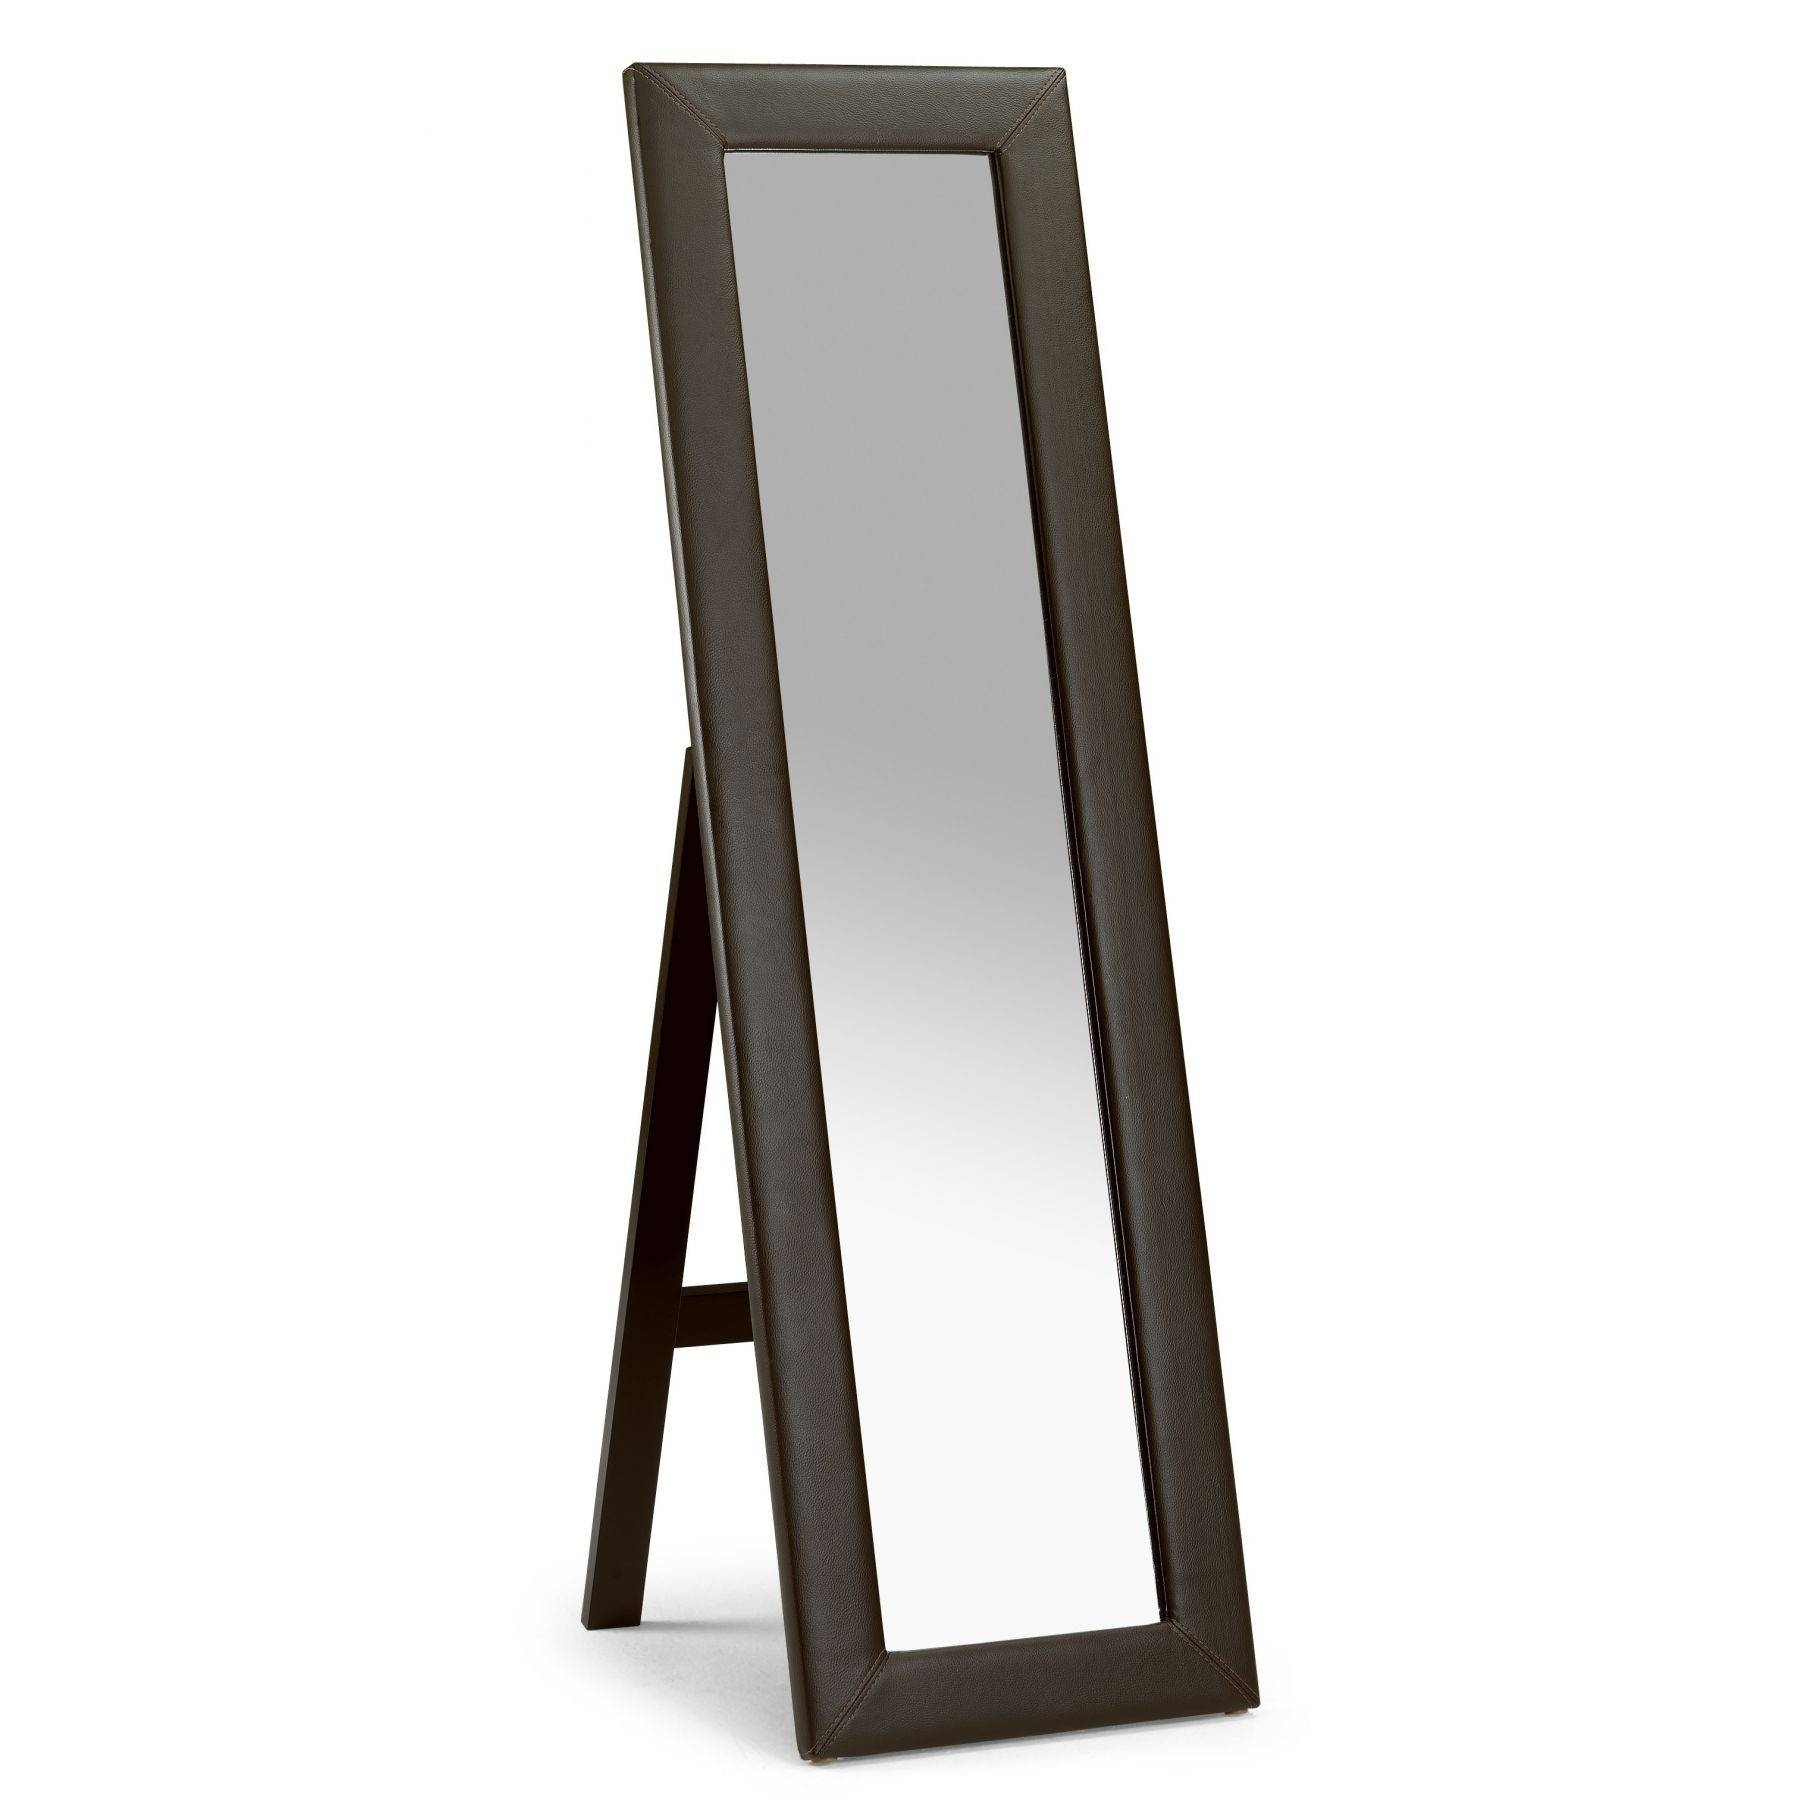 Cheval Mirror French – Decorative Cheval Mirrors For Your Home Throughout Modern Cheval Mirrors (View 10 of 25)